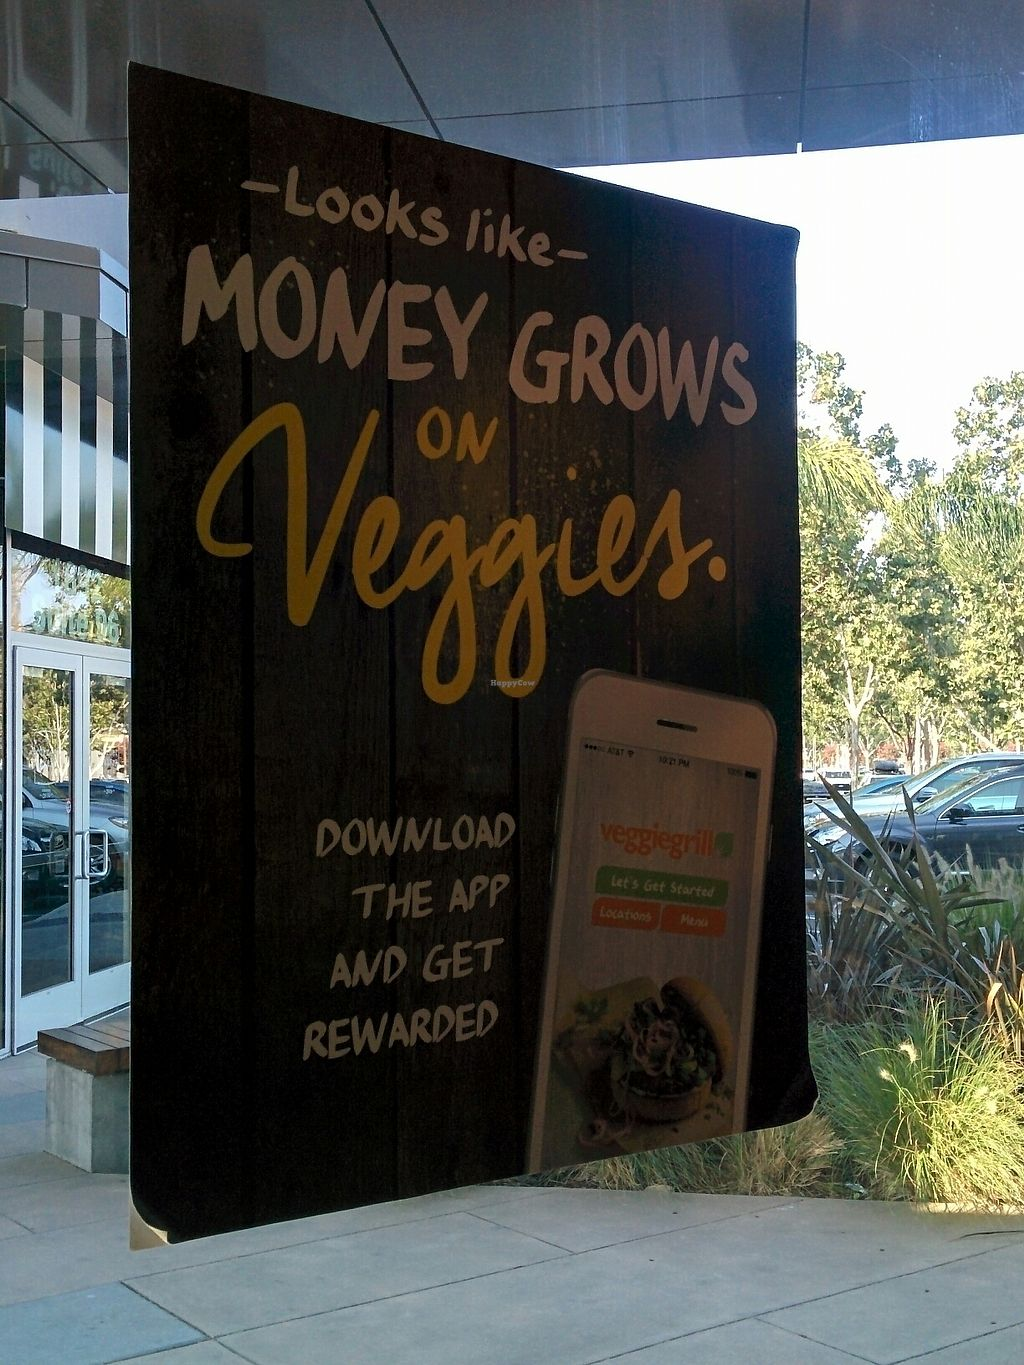 """Photo of Veggie Grill - Westgate Shopping Center  by <a href=""""/members/profile/MizzB"""">MizzB</a> <br/>get the app - money grows on veggies <br/> August 11, 2017  - <a href='/contact/abuse/image/58253/291402'>Report</a>"""